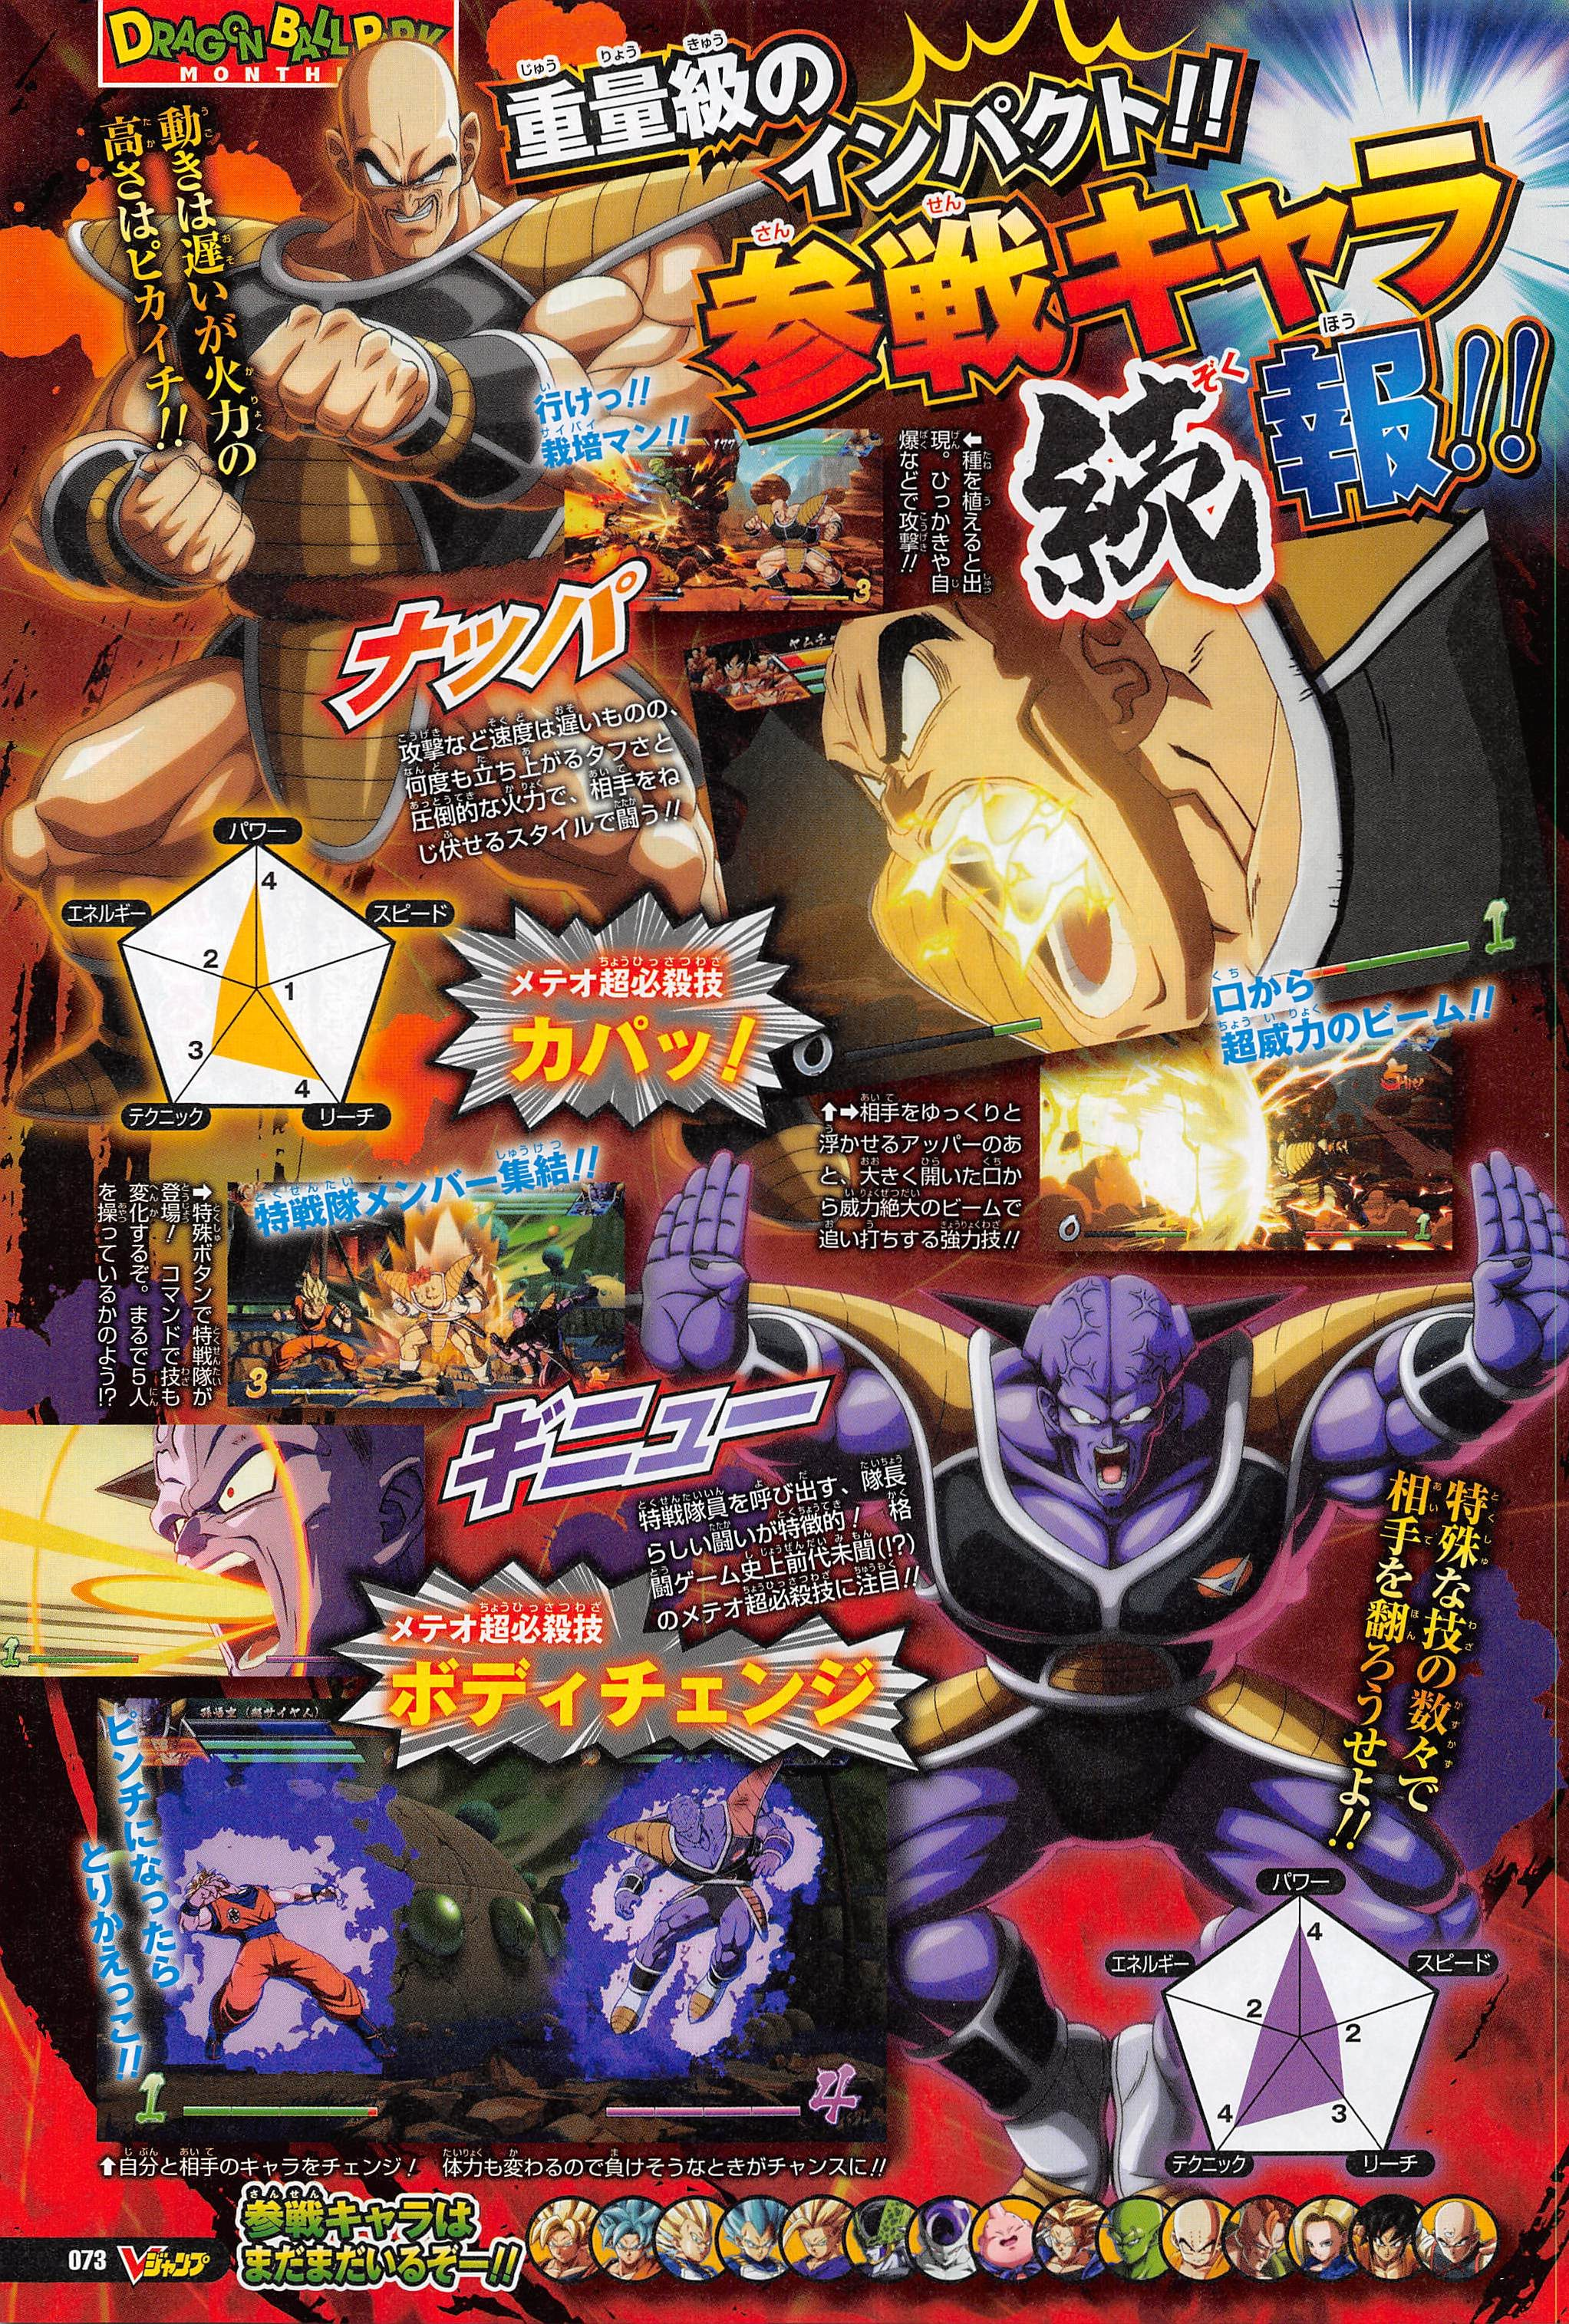 Dragon Ball FighterZ Launches February 1 In Japan Adds